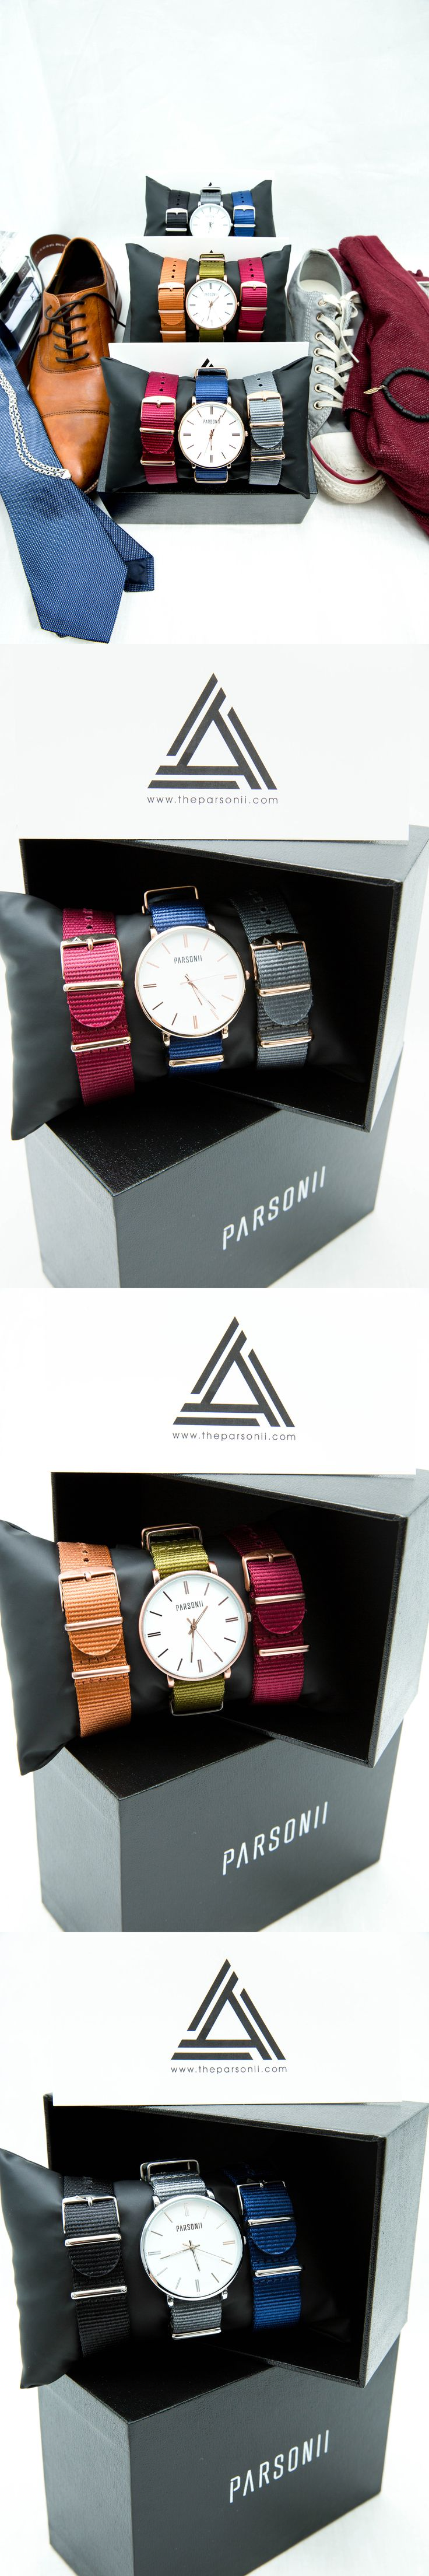 Compliment and coordinate, or mix and match? It's your choice. #TheParsonii